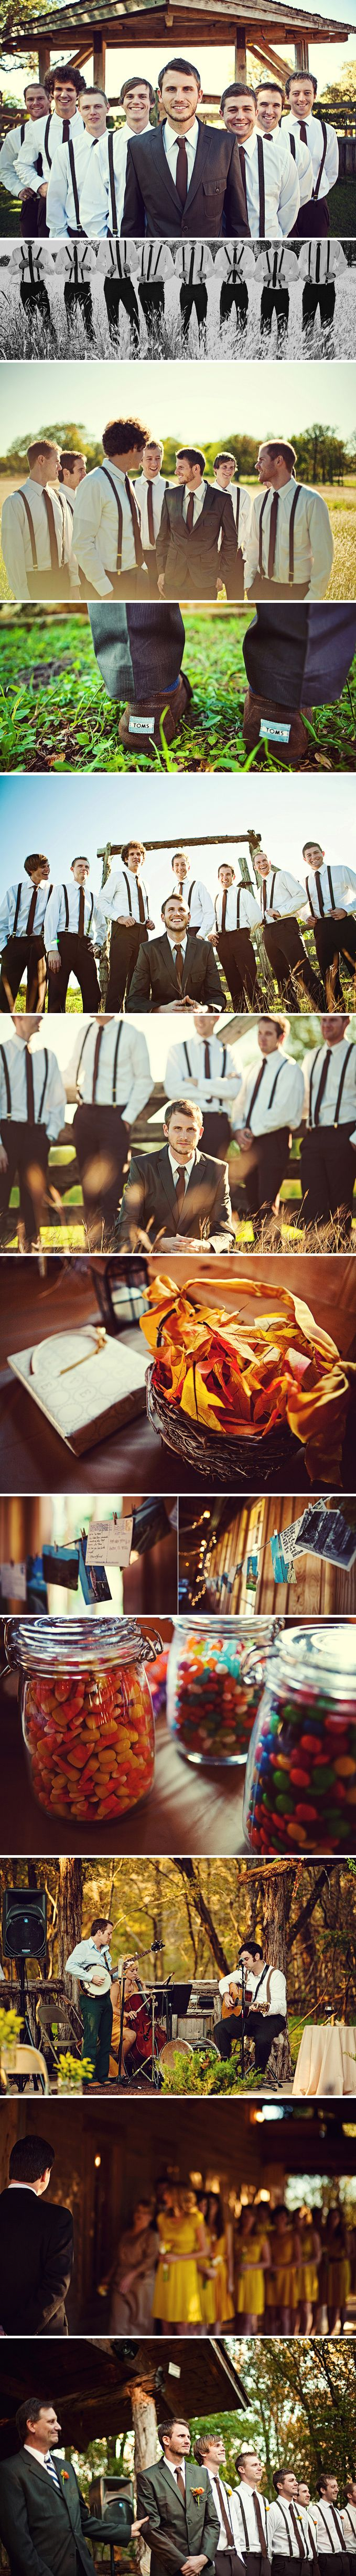 Some great looking fun wedding photos - would be fantastic to have these as our wedding photos of the guys :)